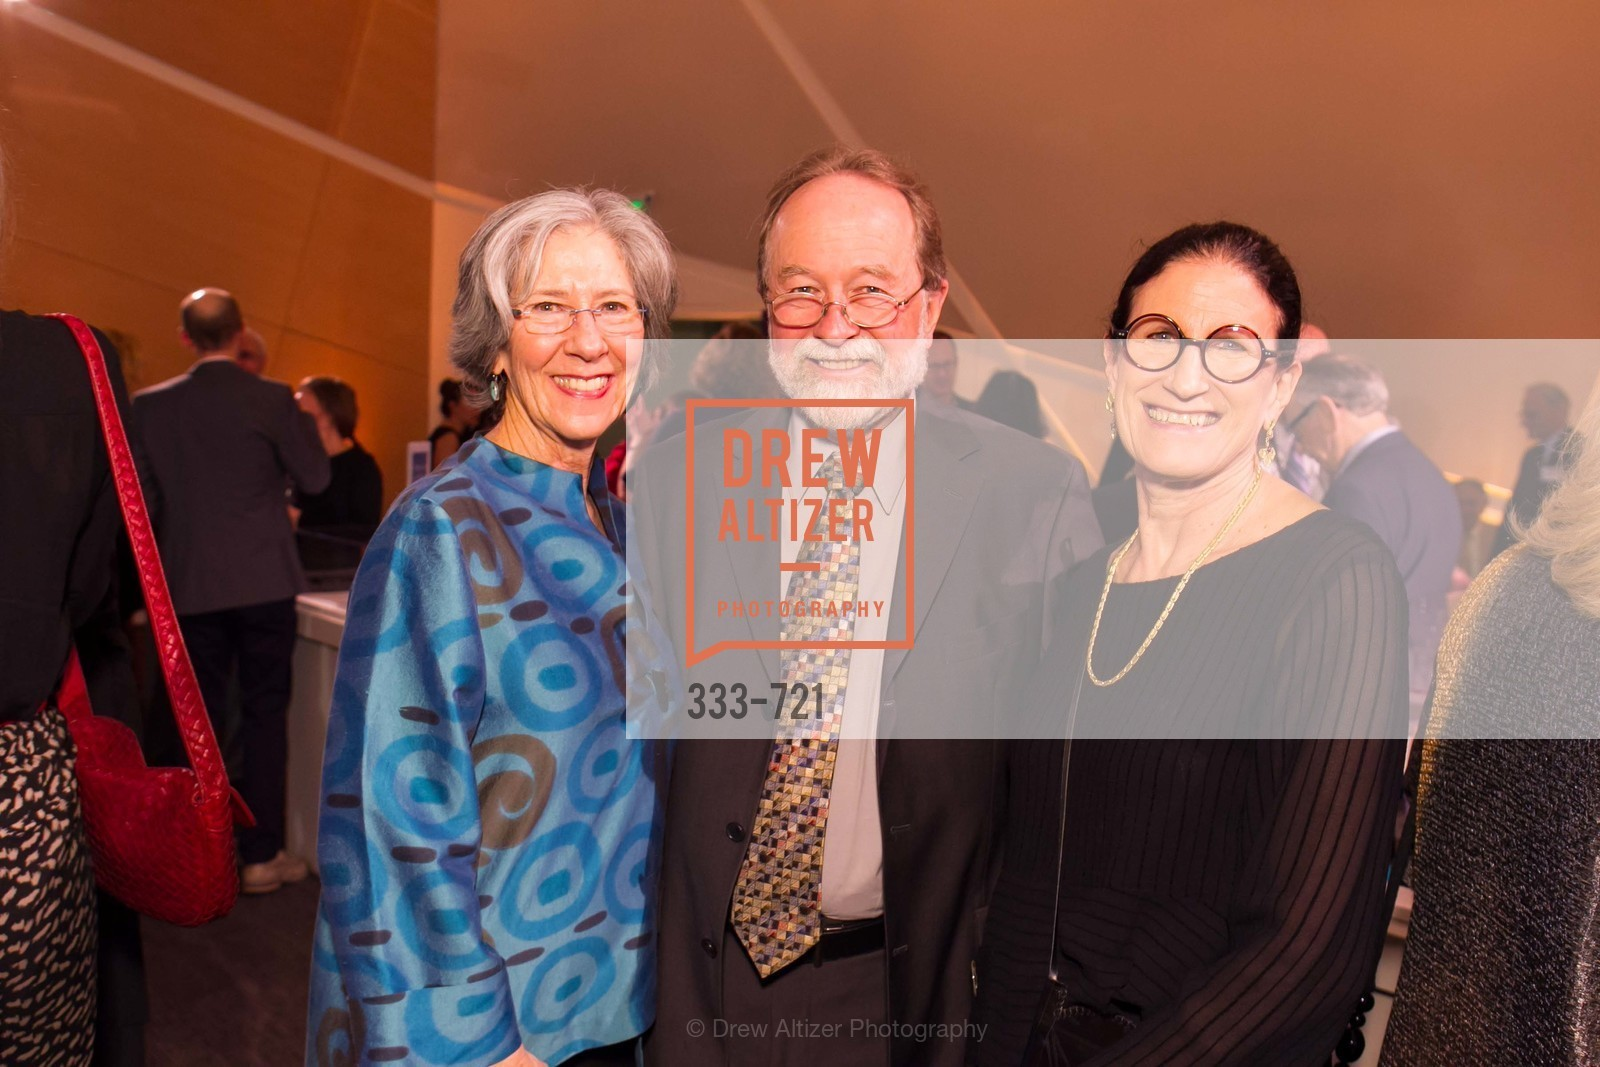 Shelly Saxe, Tony Henning, Carol Henning, The 2015 Dorothy Saxe Invitational Celebration at the JEWISH MUSEUM, US, May 13th, 2015,Drew Altizer, Drew Altizer Photography, full-service agency, private events, San Francisco photographer, photographer california